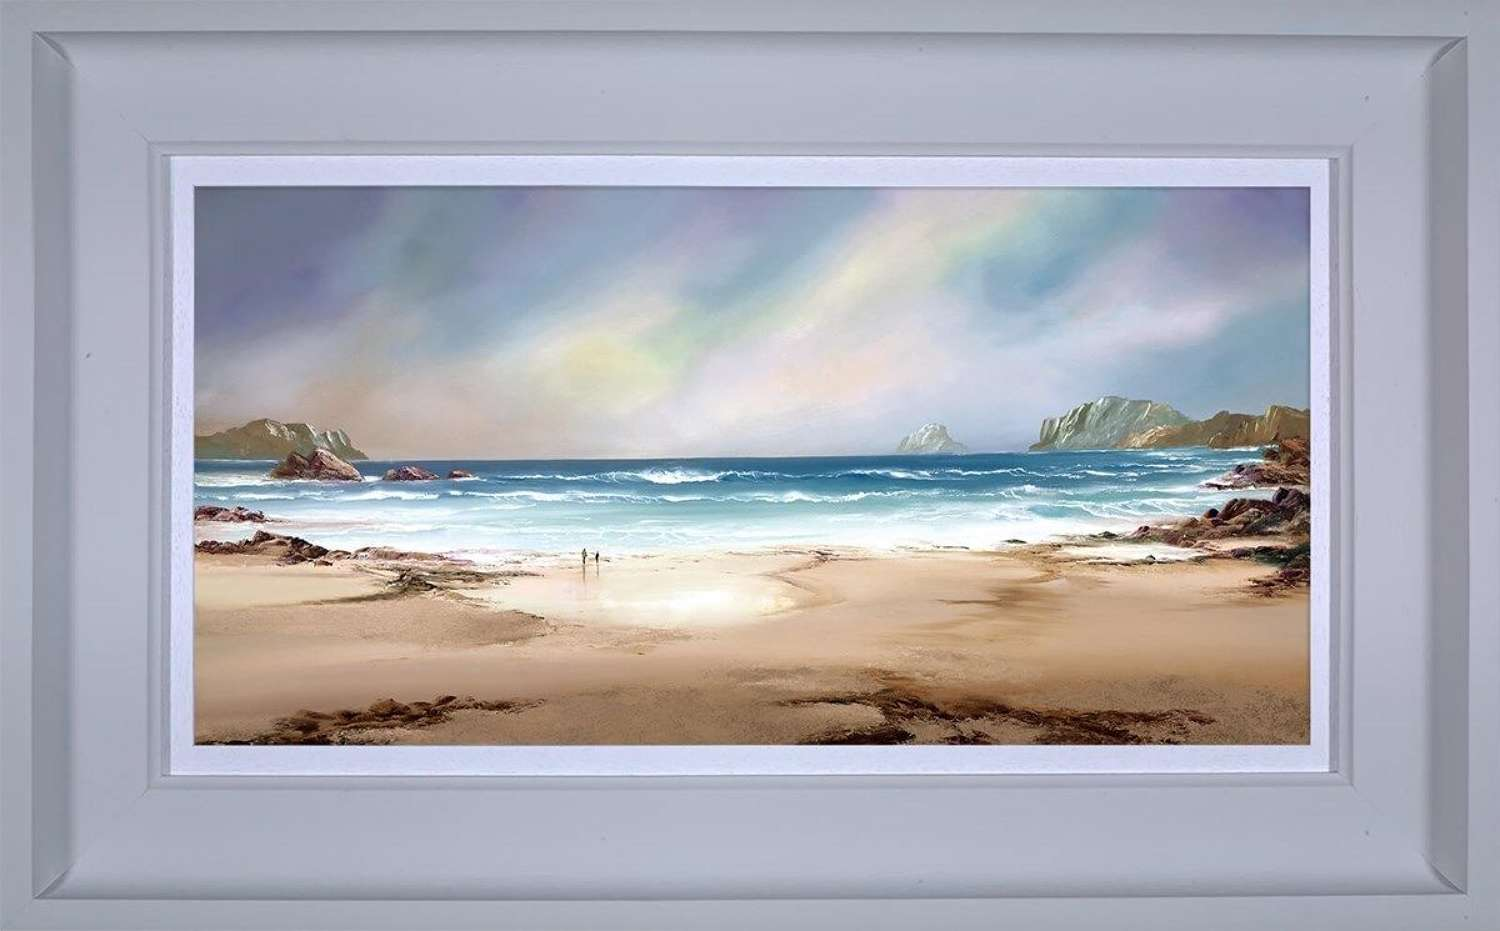 Peaceful Shores - Framed Canvas Art Print by Philip Gray